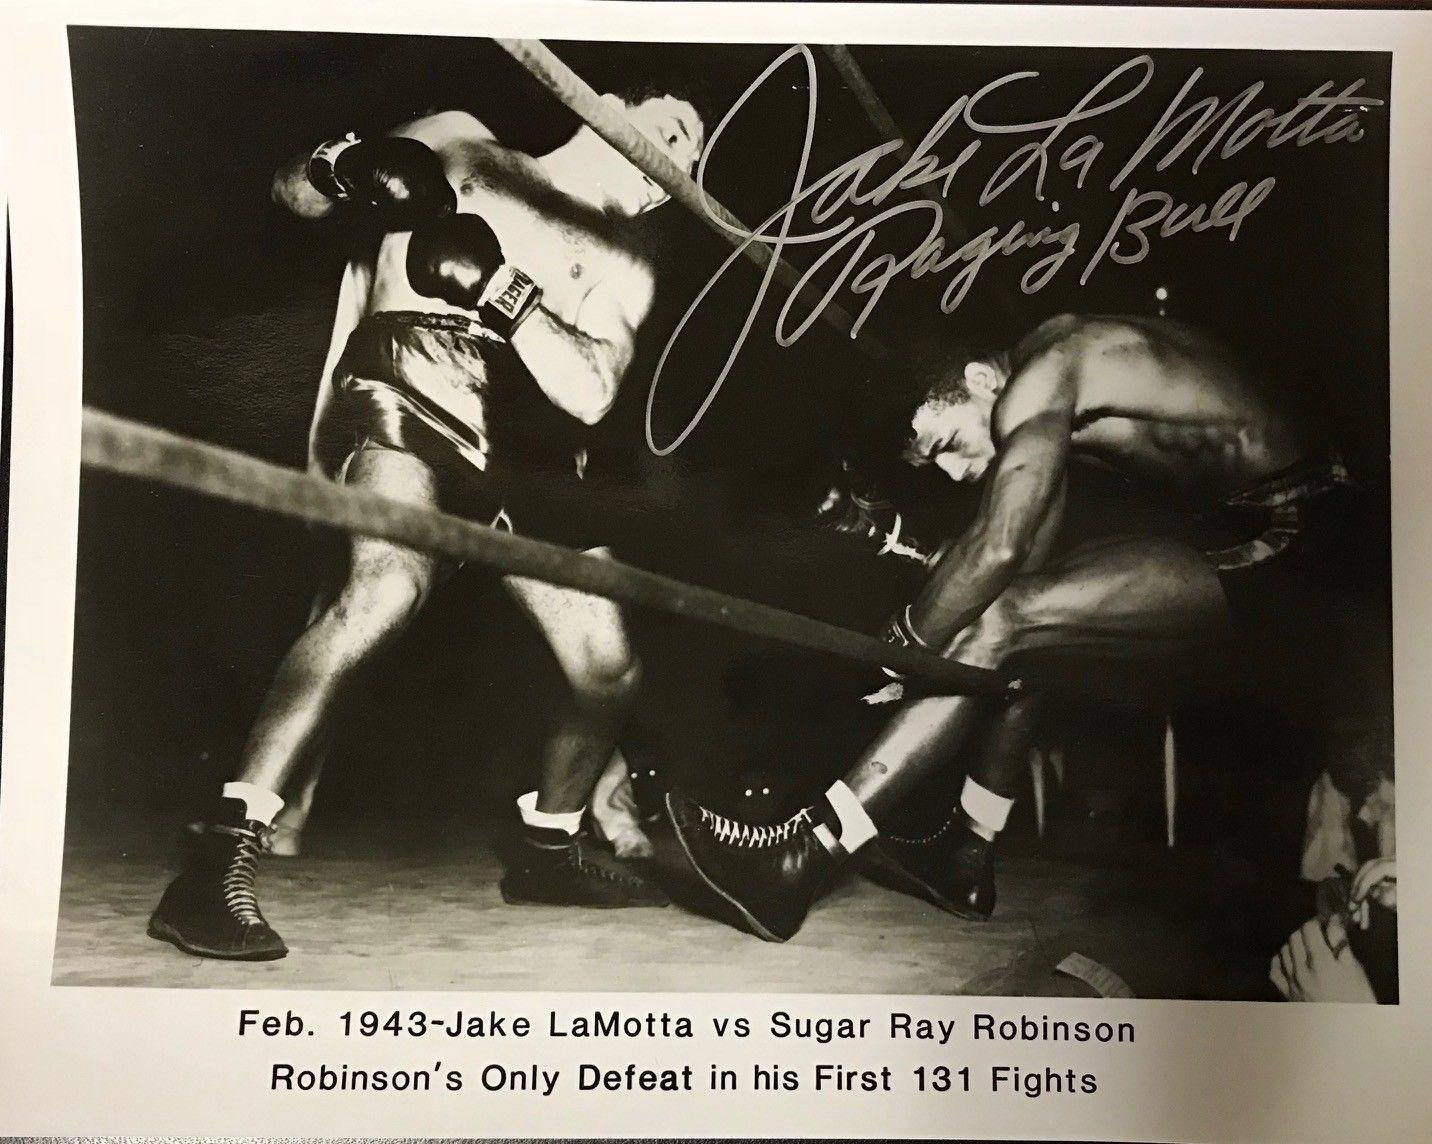 JAKE LaMOTTA AUTOGRAPHED 8X10 PHOTO THE RAGING BULL SUGAR RAY ROBINSON -QOL - PSA/DNA Certified - Autographed Boxing Photos Baseball Card Outlet